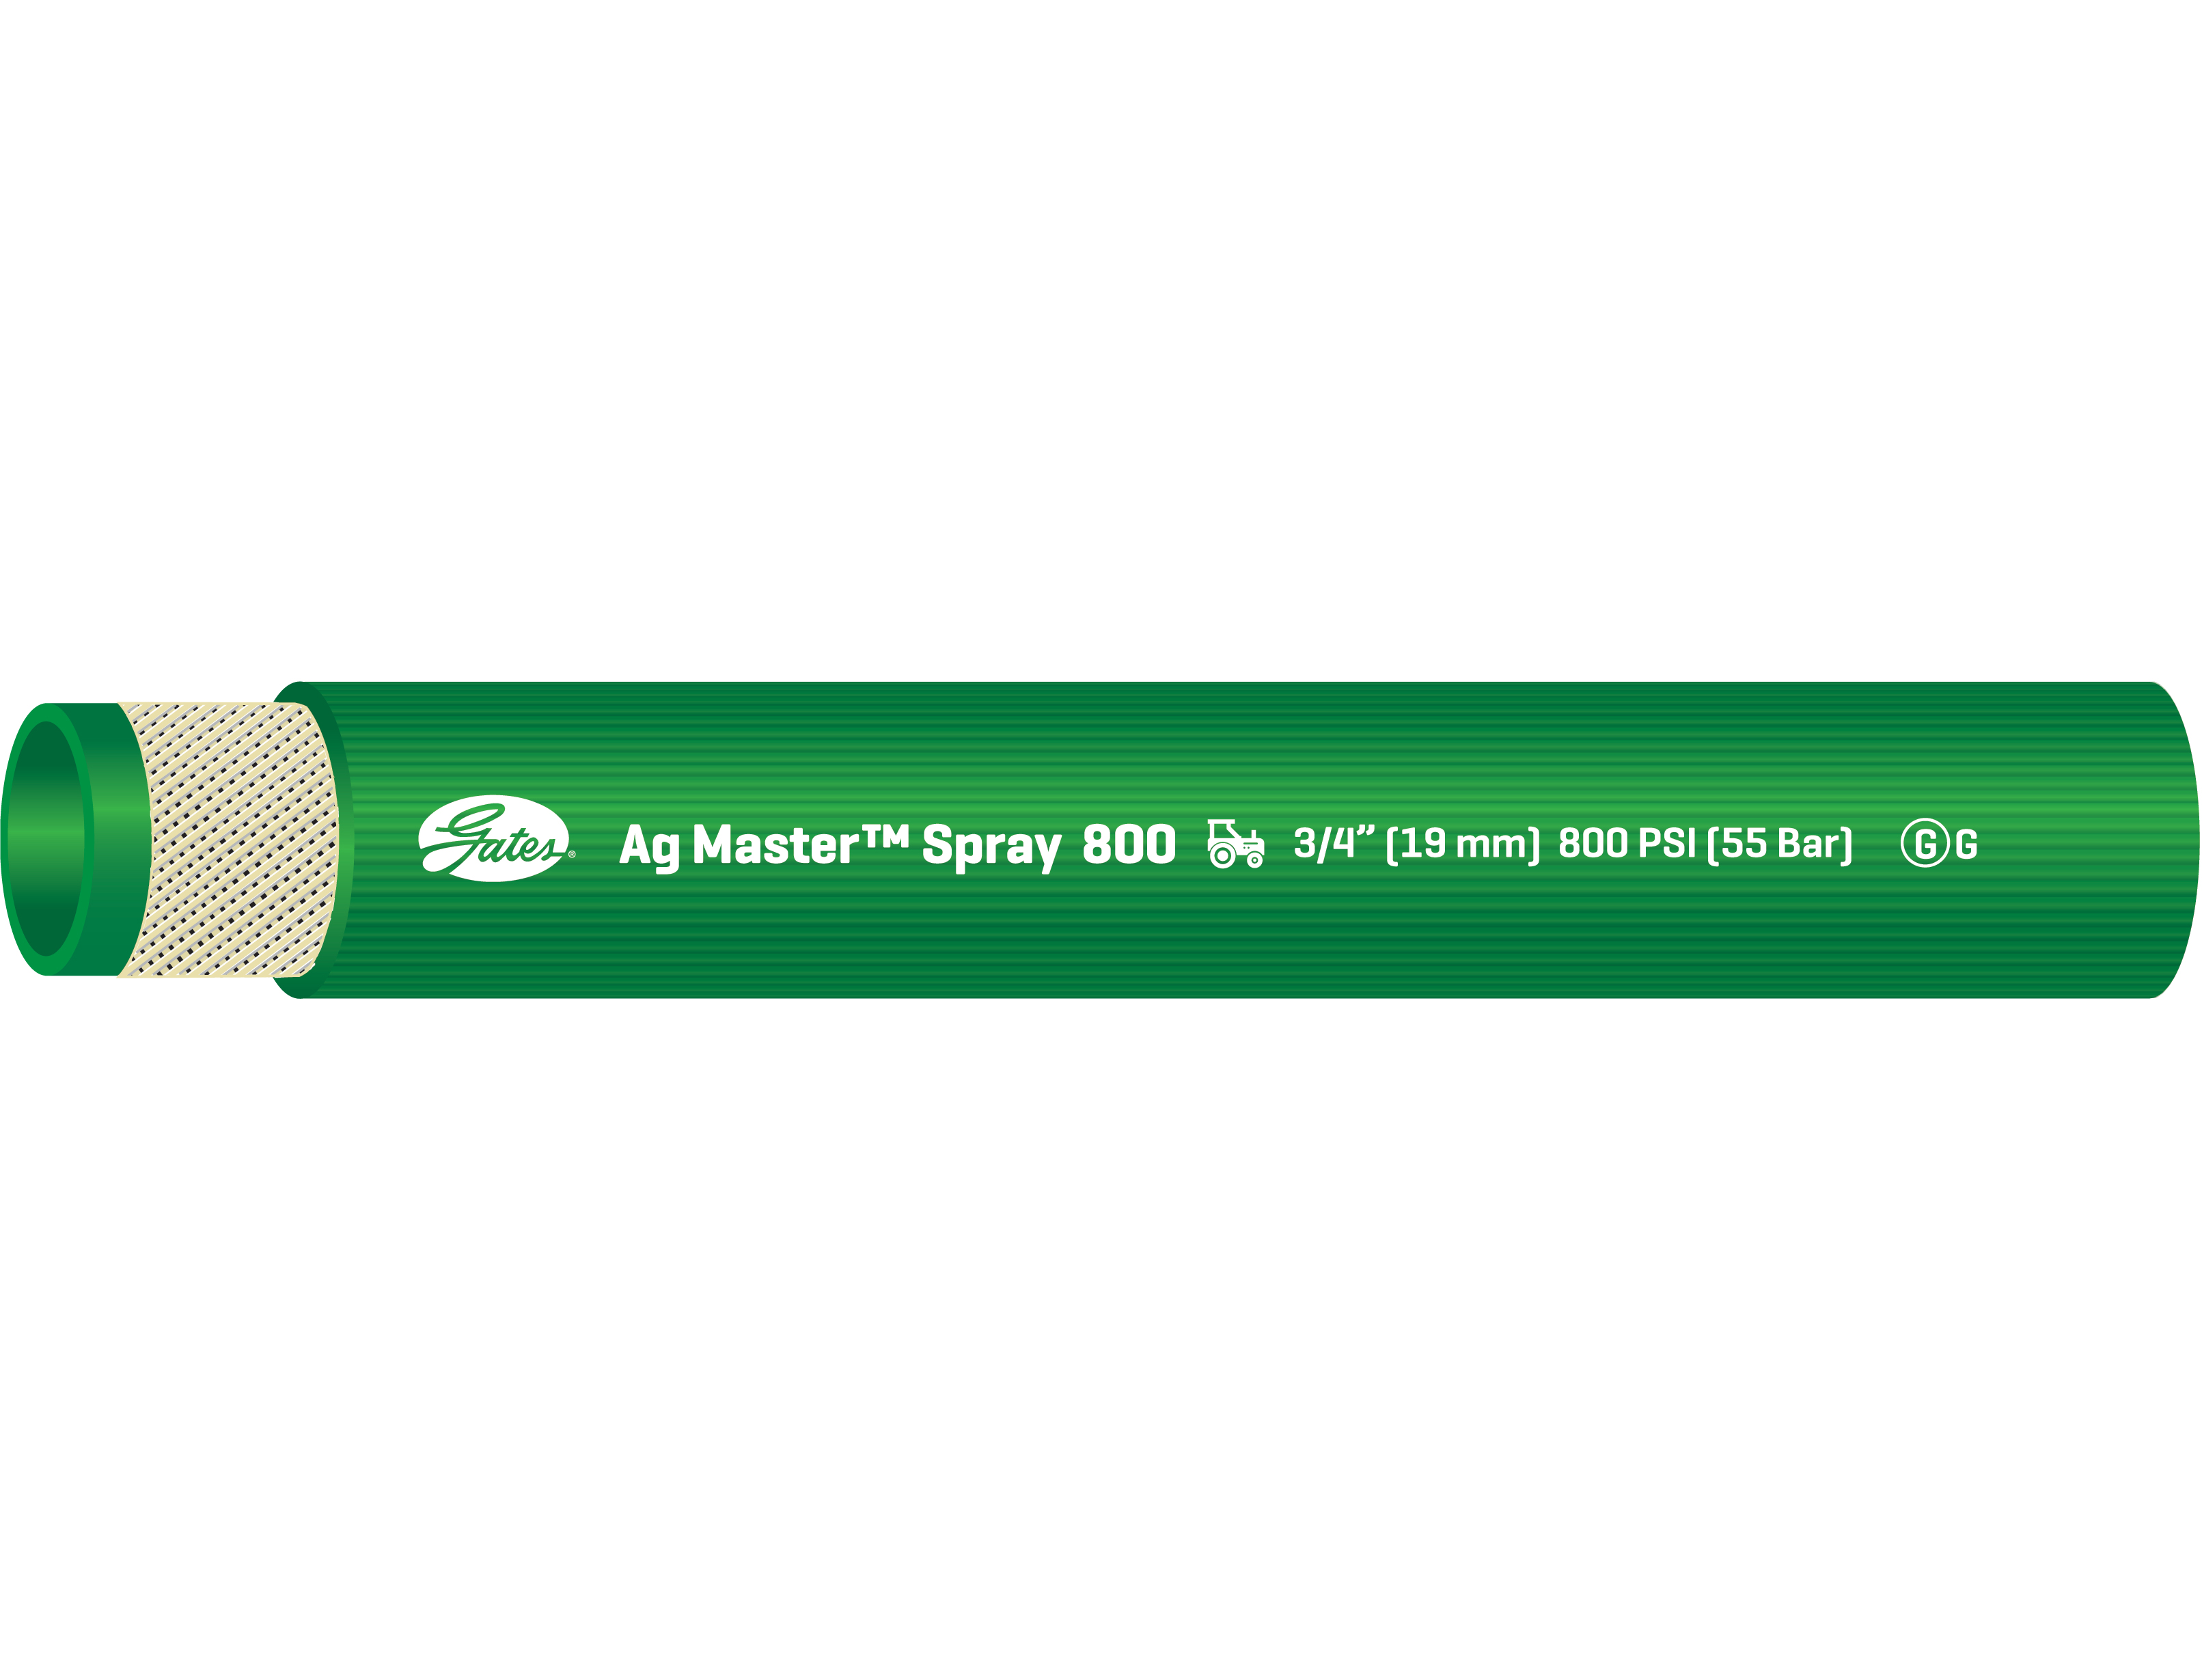 Ag Master Spray 800 Hose